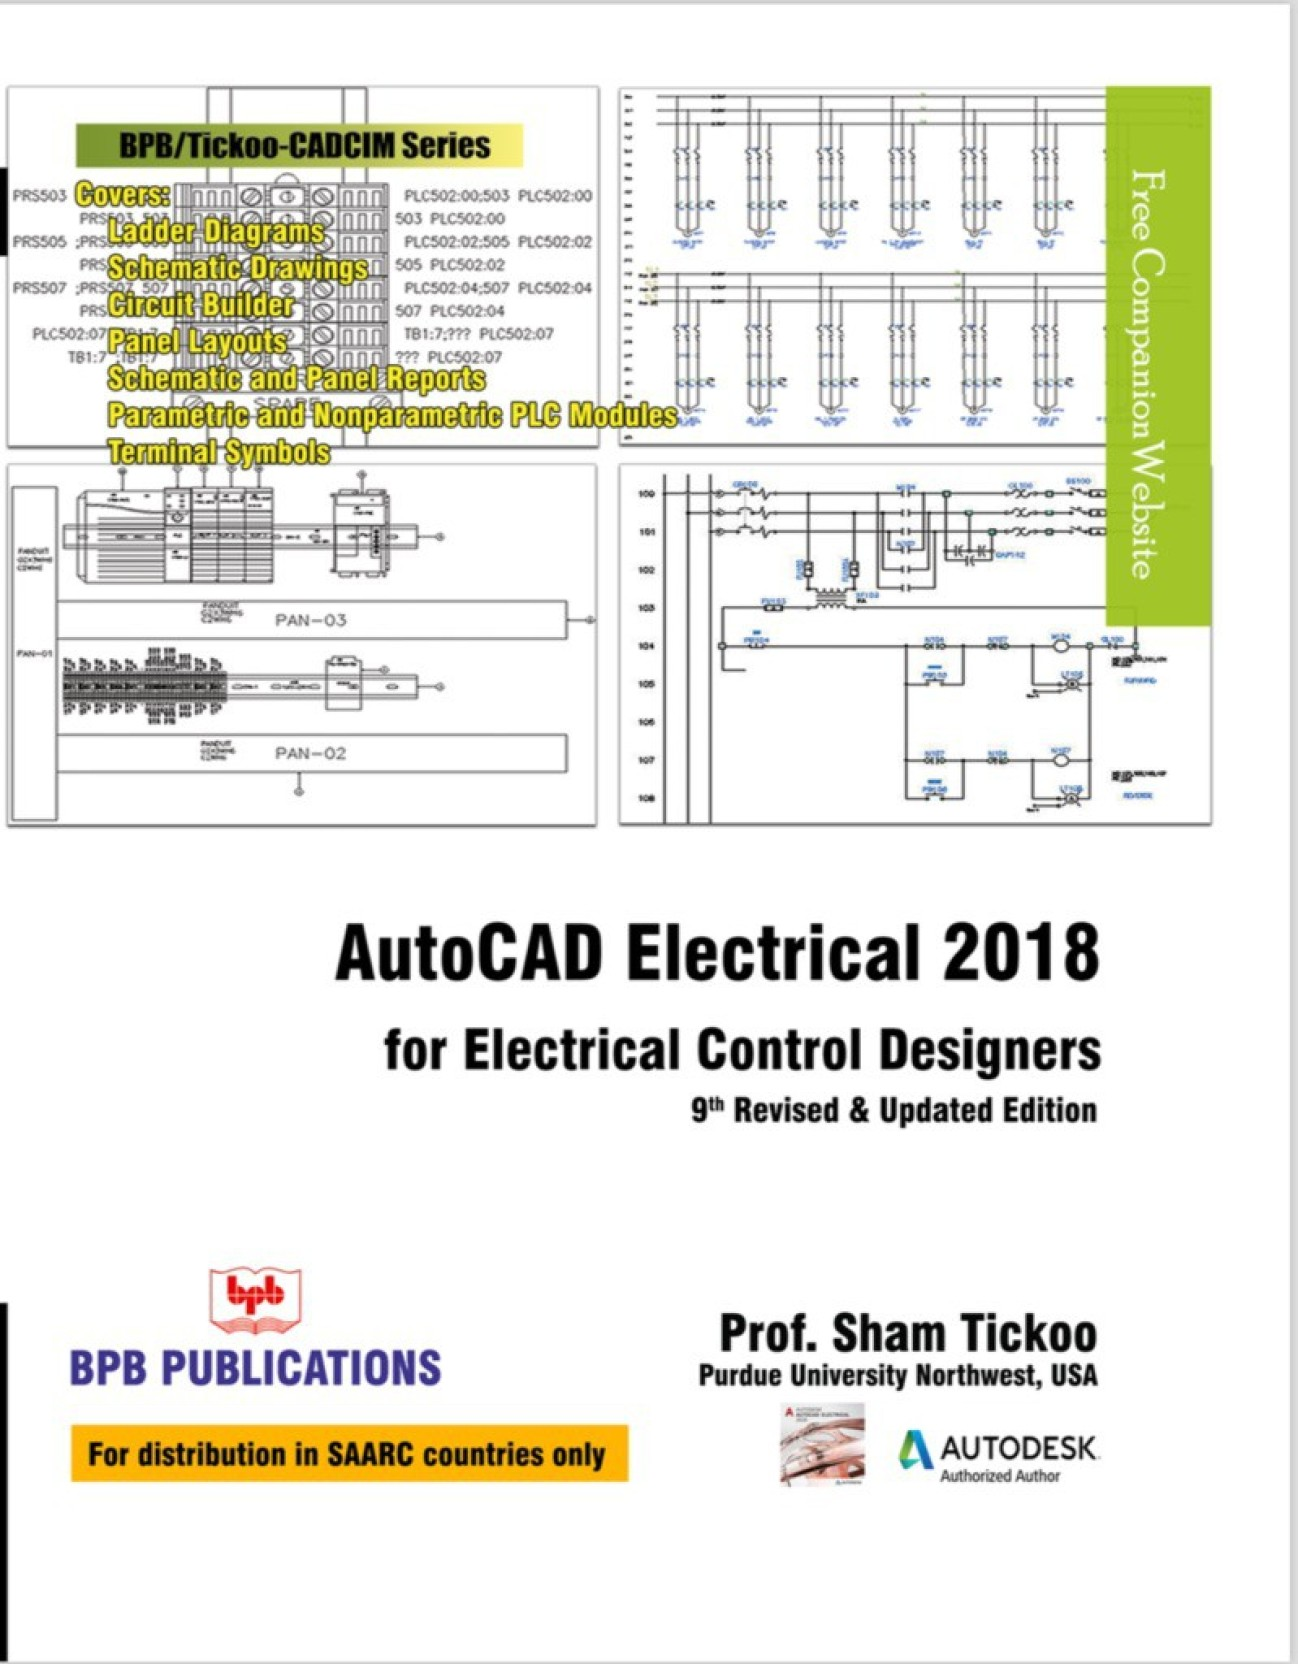 Autocad Electrical 2018 For Control Designers Buy Schematic Symbols Q Add To Cart